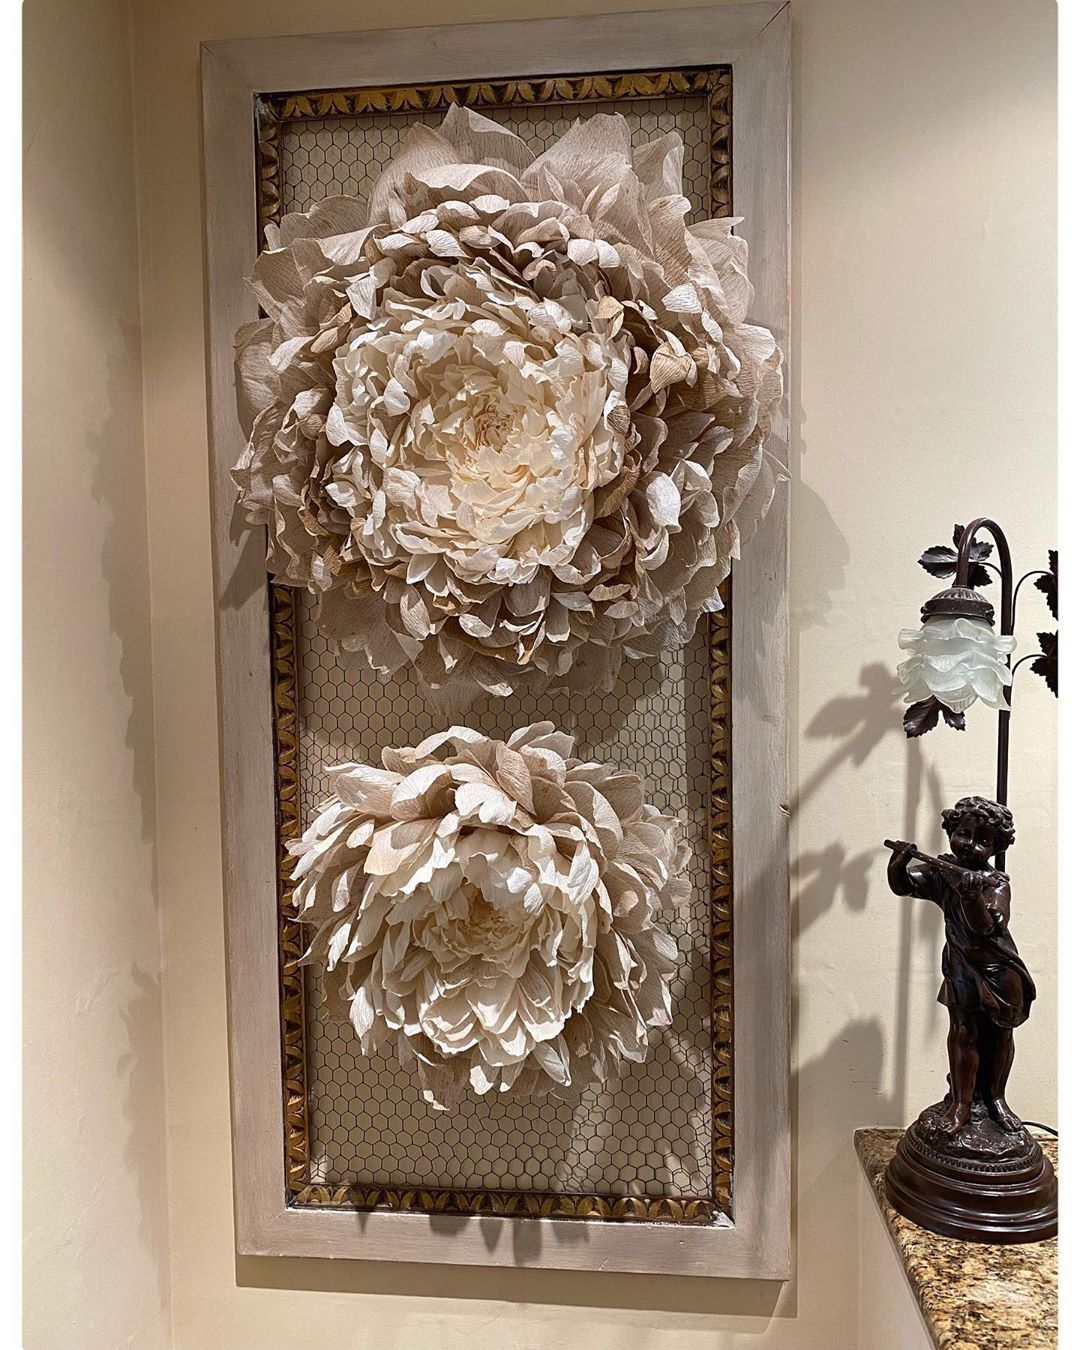 Huge Crepe Paper Flowers for Wall